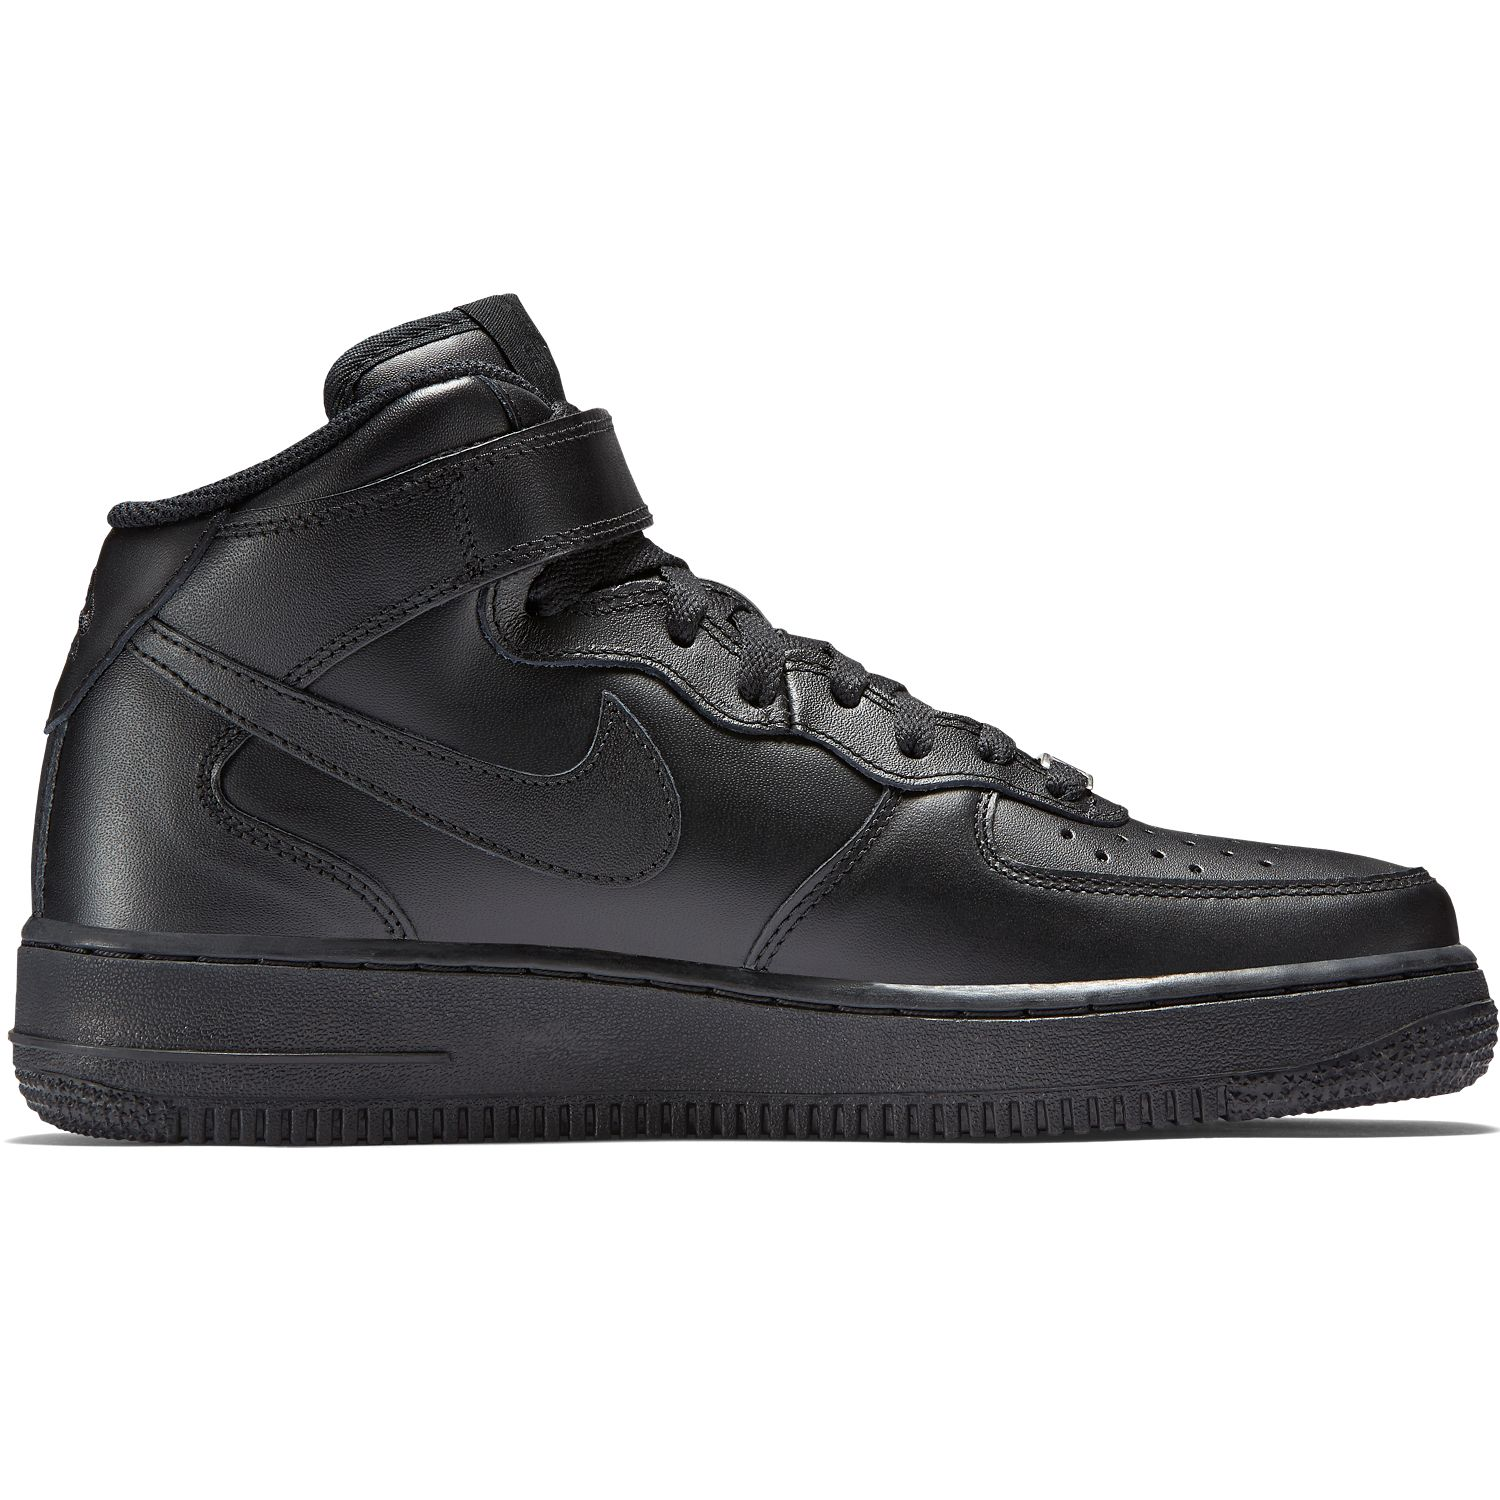 Buty damskie Nike Air Force 1 Mid '07 LE 366731 001